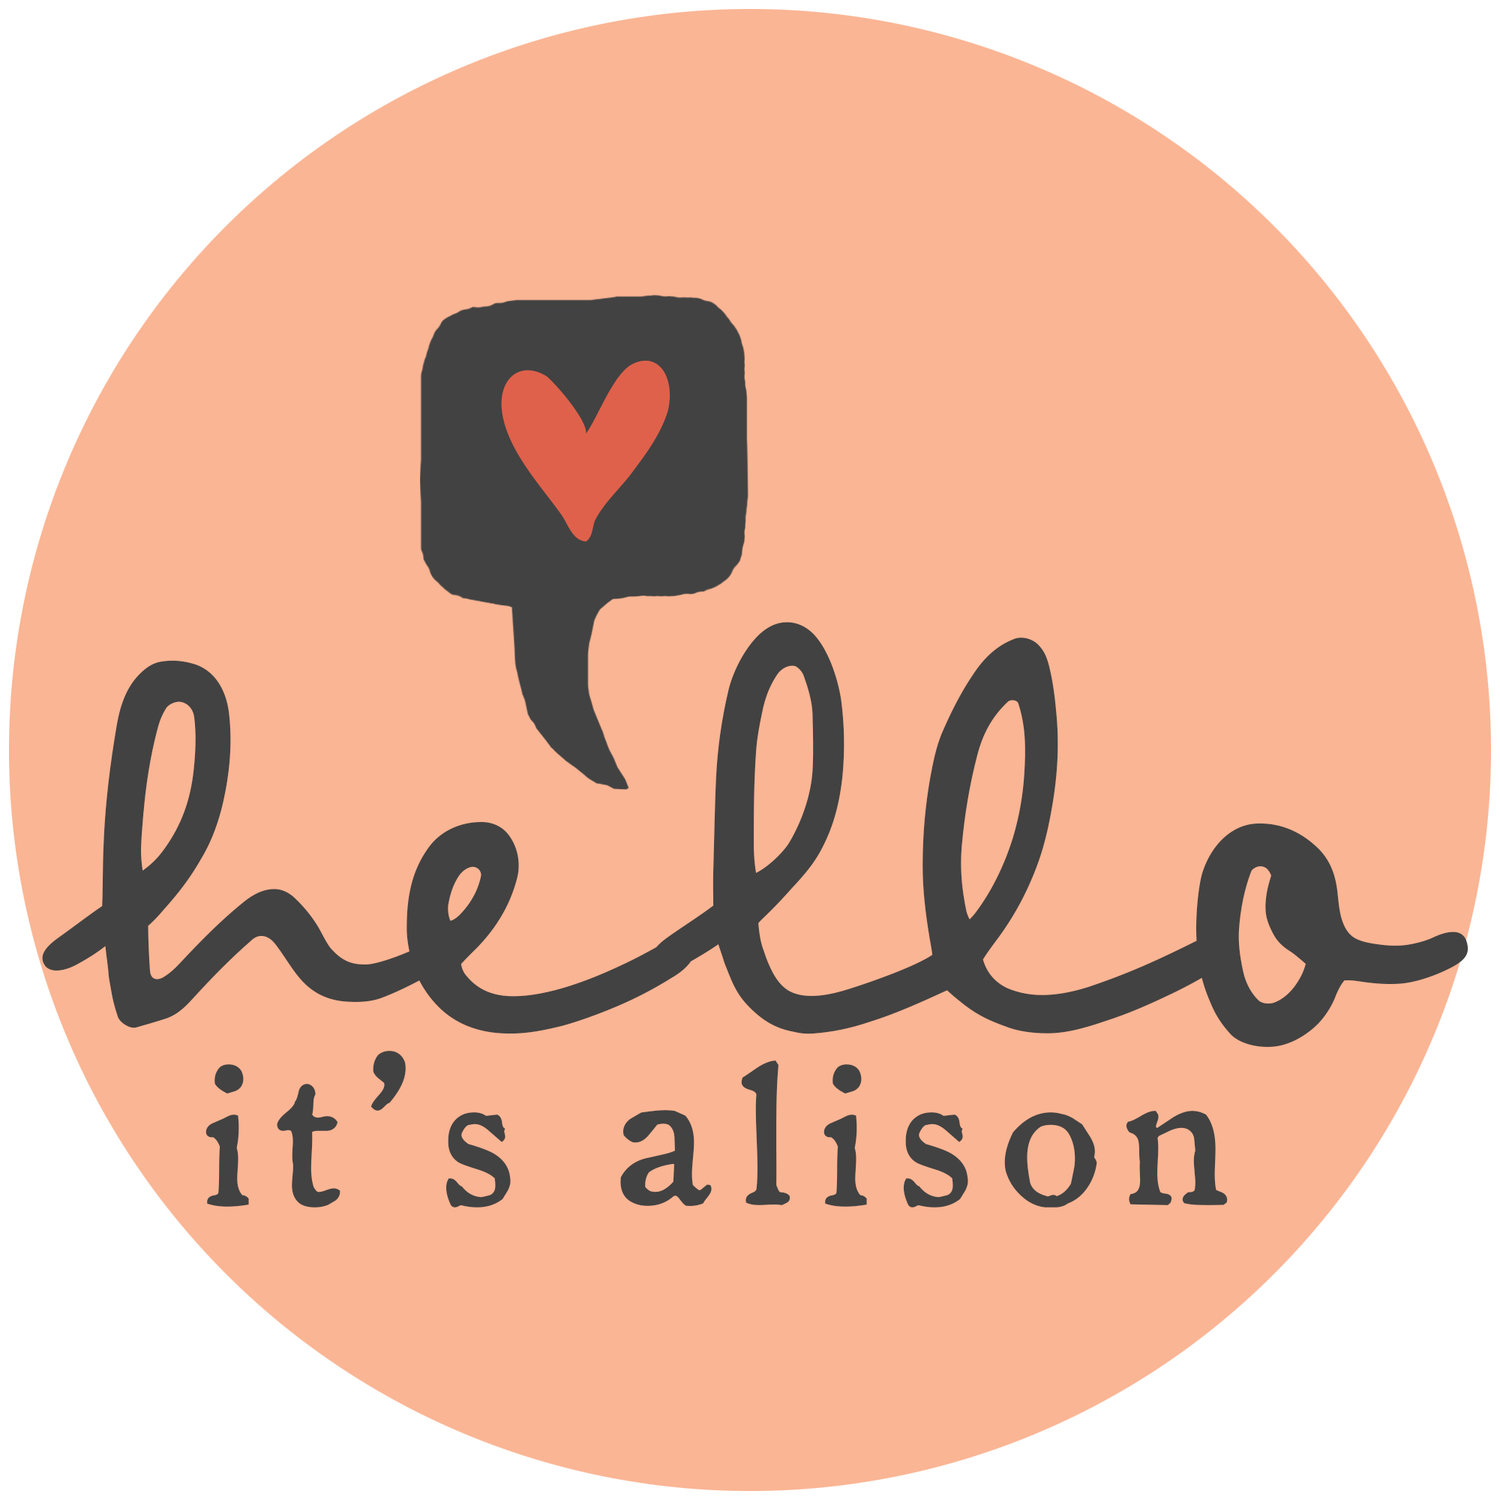 Hello, it's Alison